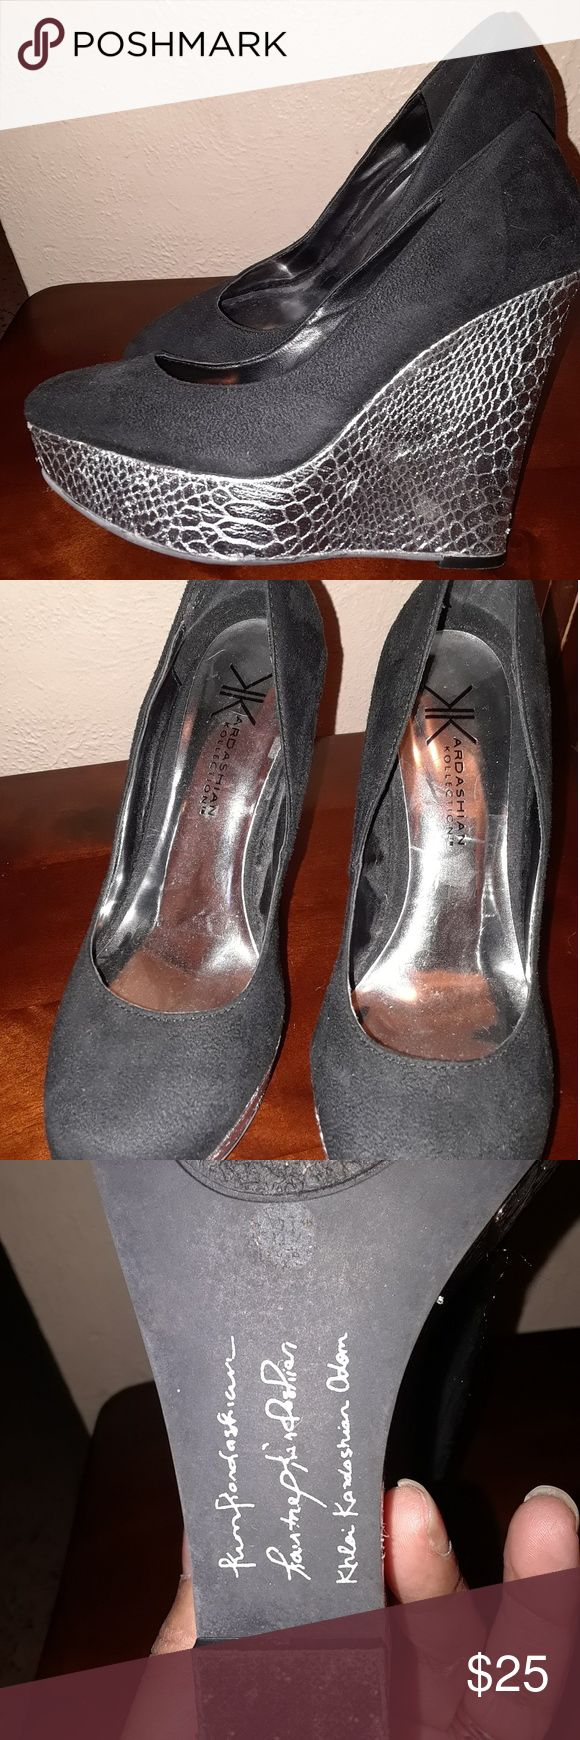 Kardashian kollection Wedge Heels Black & Silver wedge heels, very comfortable & classy. Still in great condition Kardashian Kollection Shoes Heels